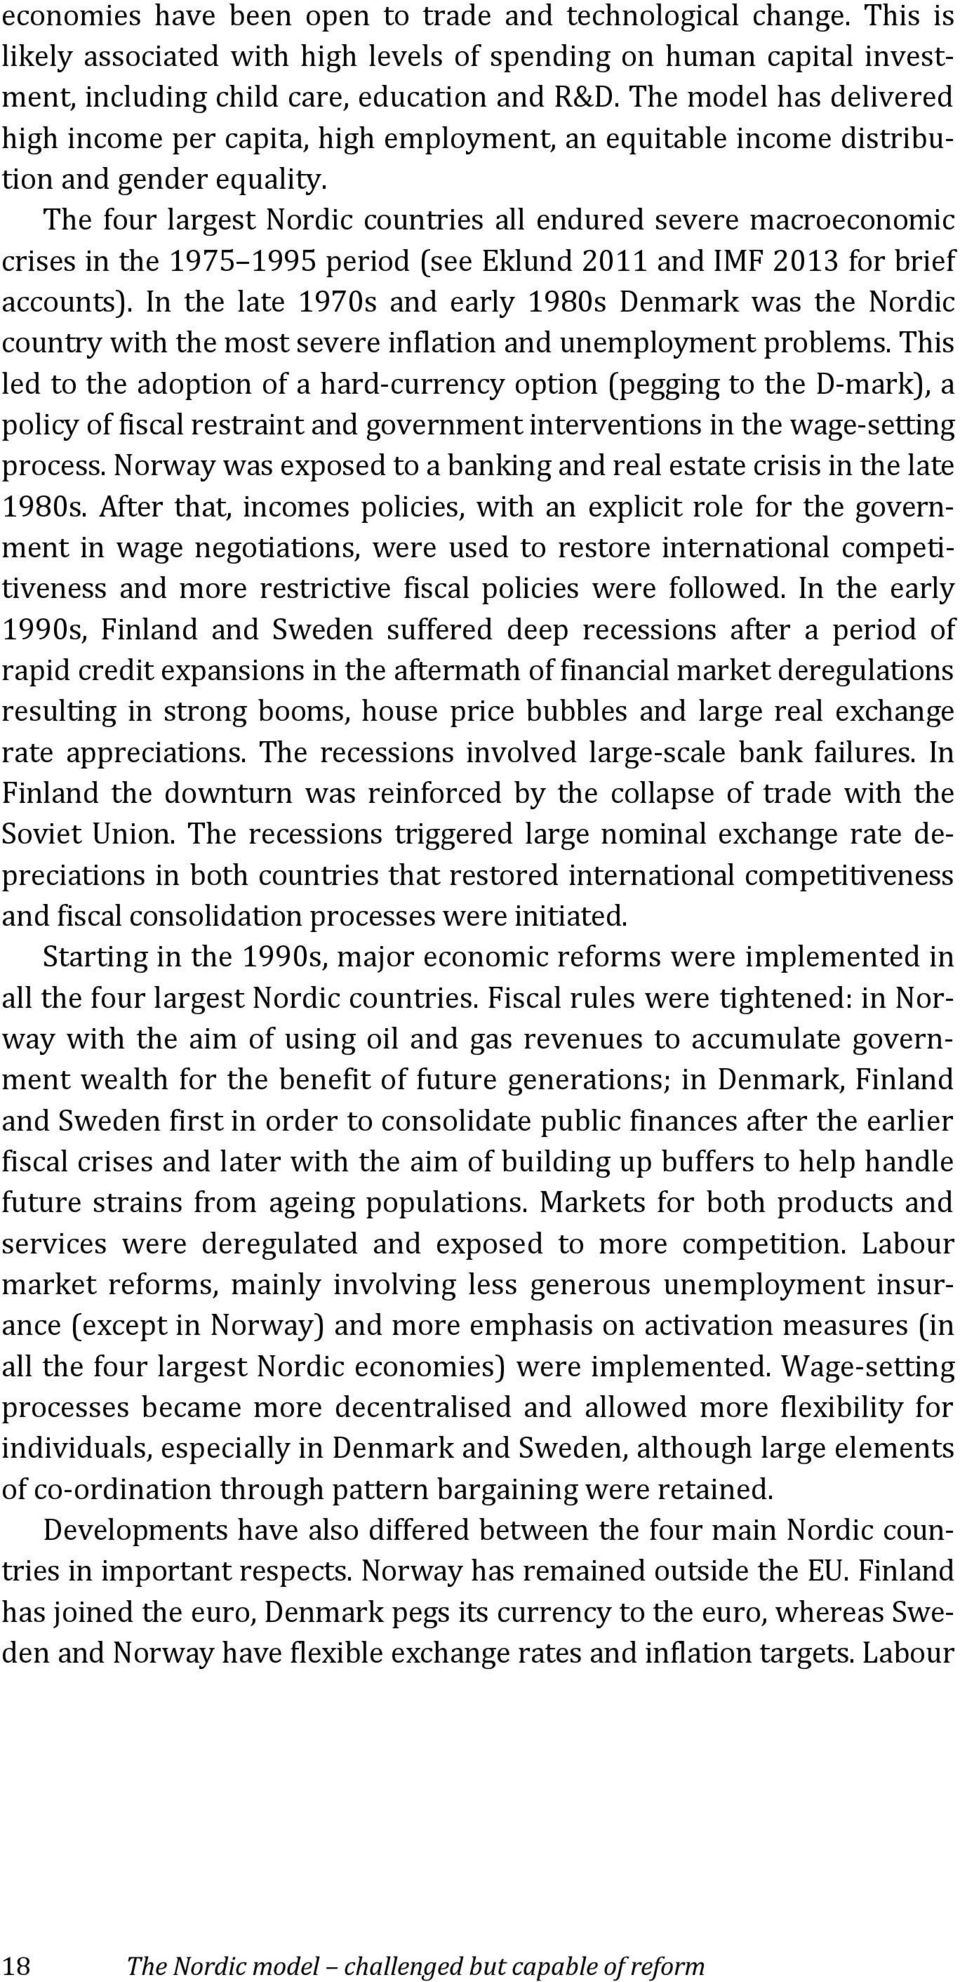 The four largest Nordic countries all endured severe macroeconomic crises in the 1975 1995 period (see Eklund 2011 and IMF 2013 for brief accounts).